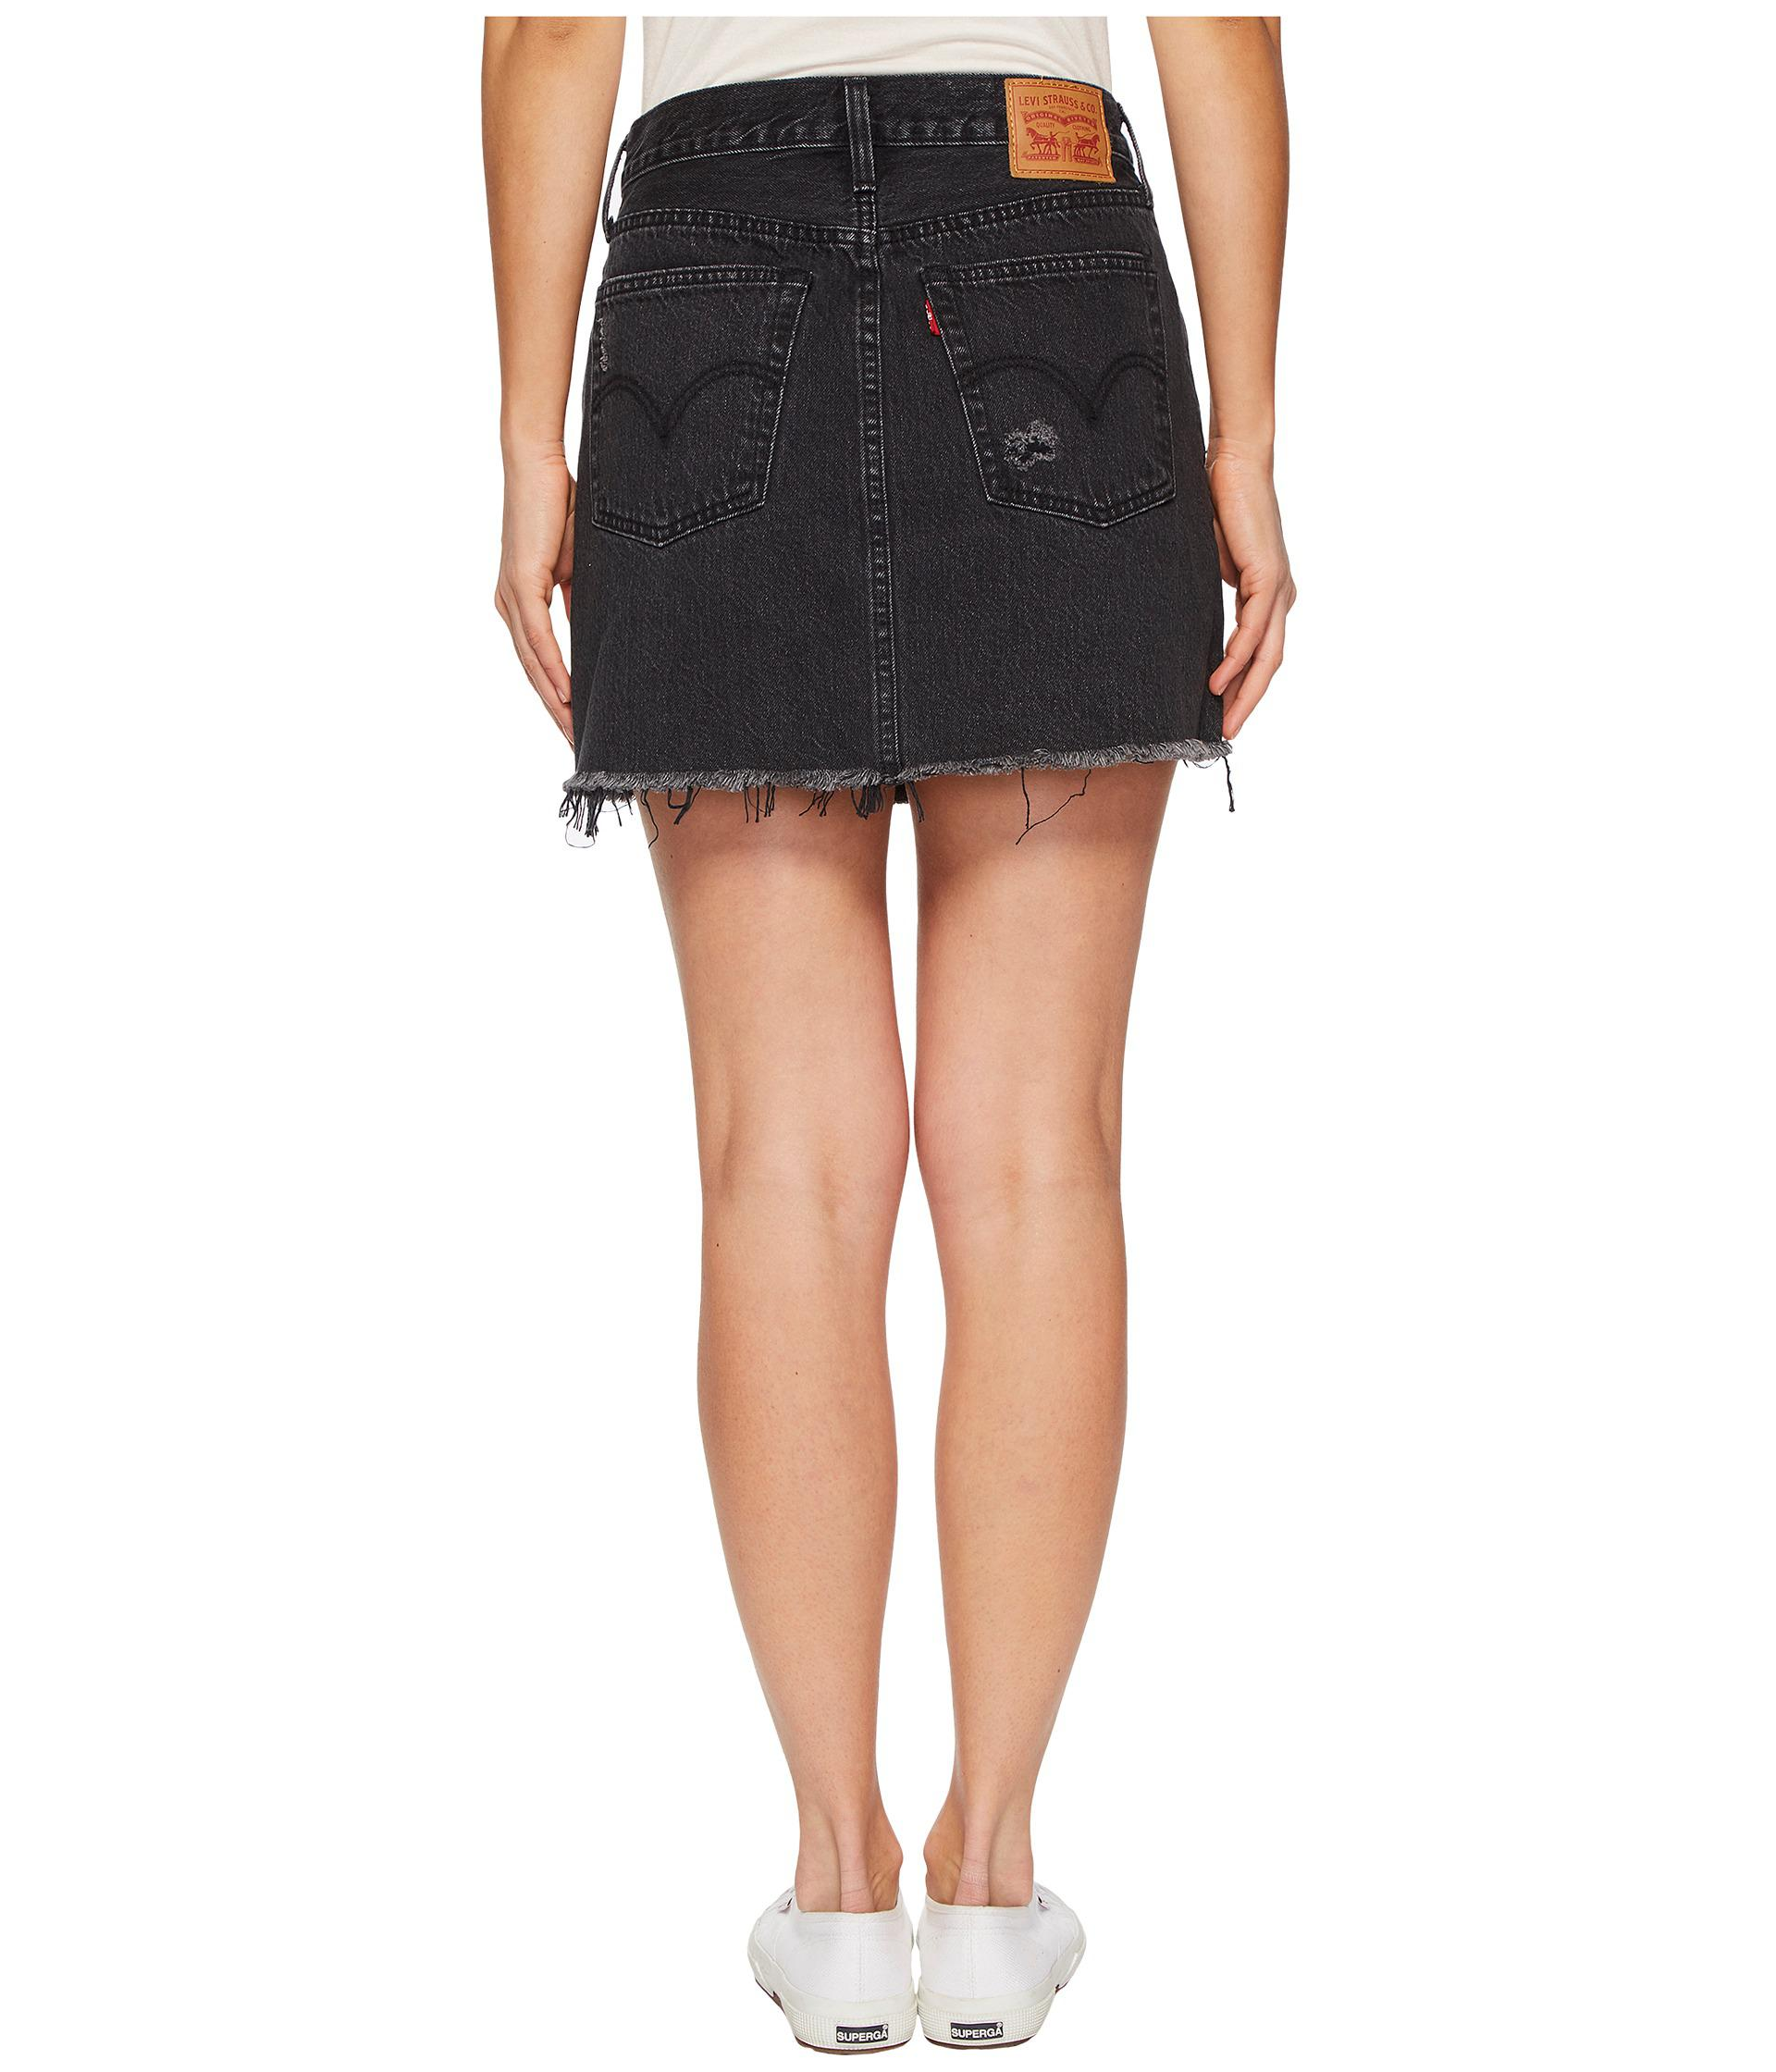 d0b2caaba Levi's Premium Deconstructed Skirt in Black - Lyst